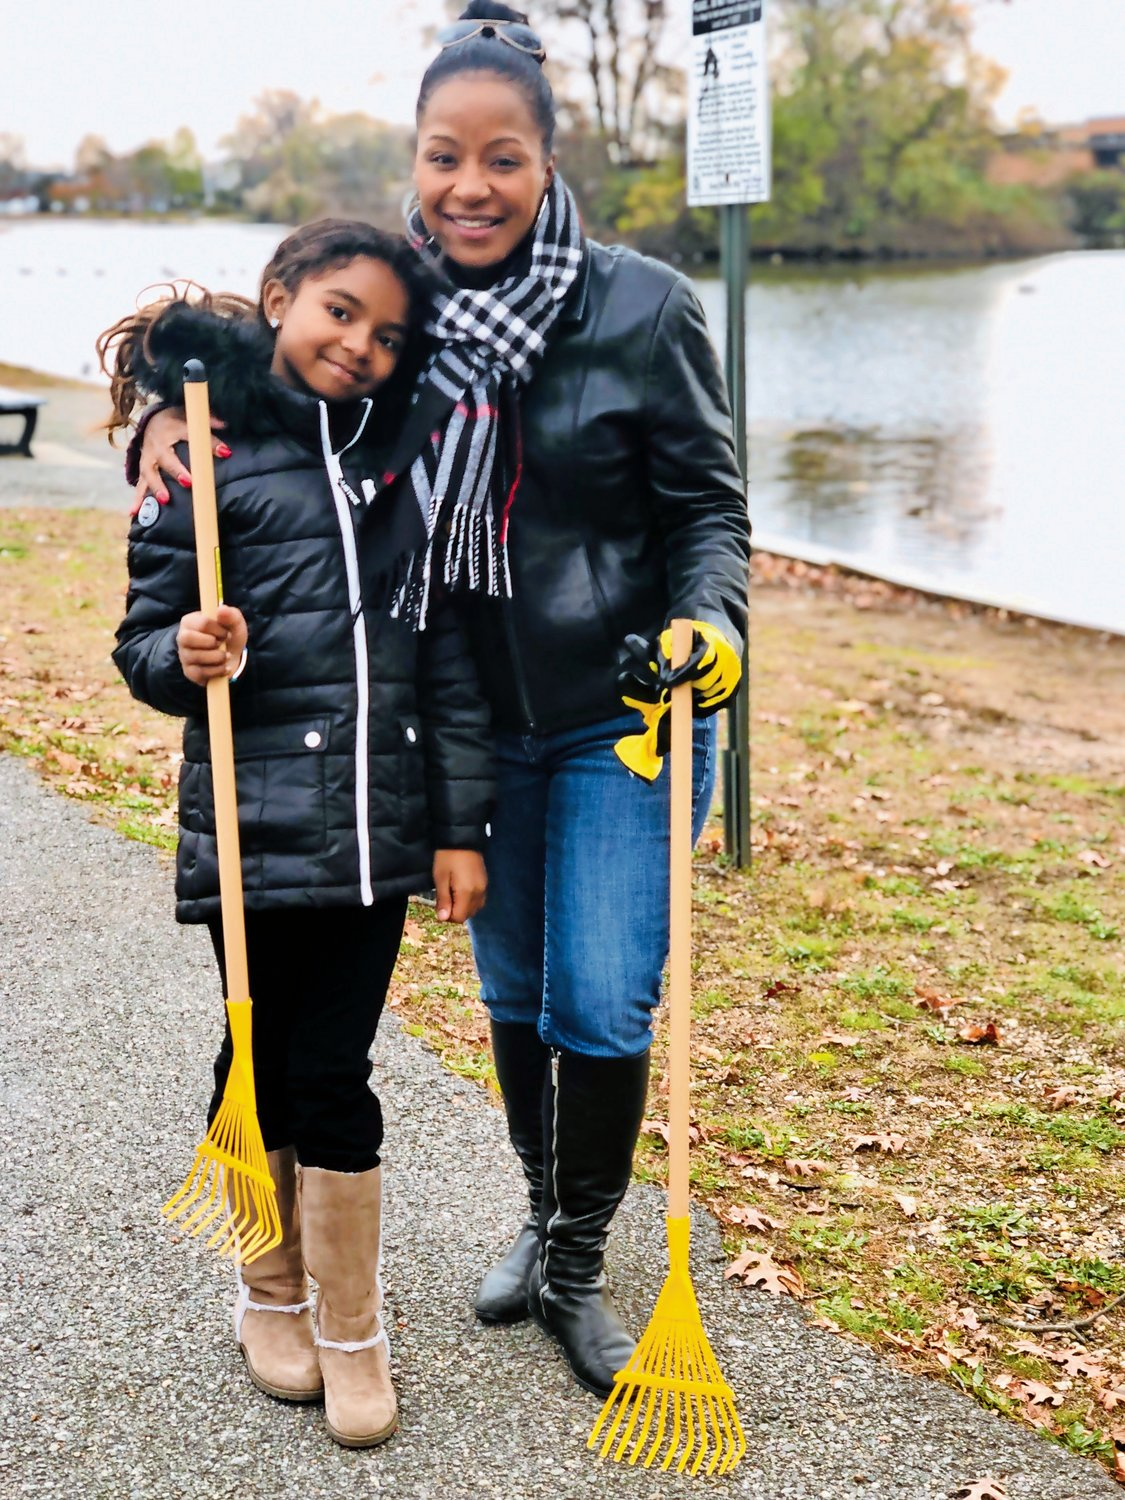 SMCCA Trustee Tricia Sattar, right, who is co-planning the Youth Club, brought along her daughter, Liyana, to the clean-up.